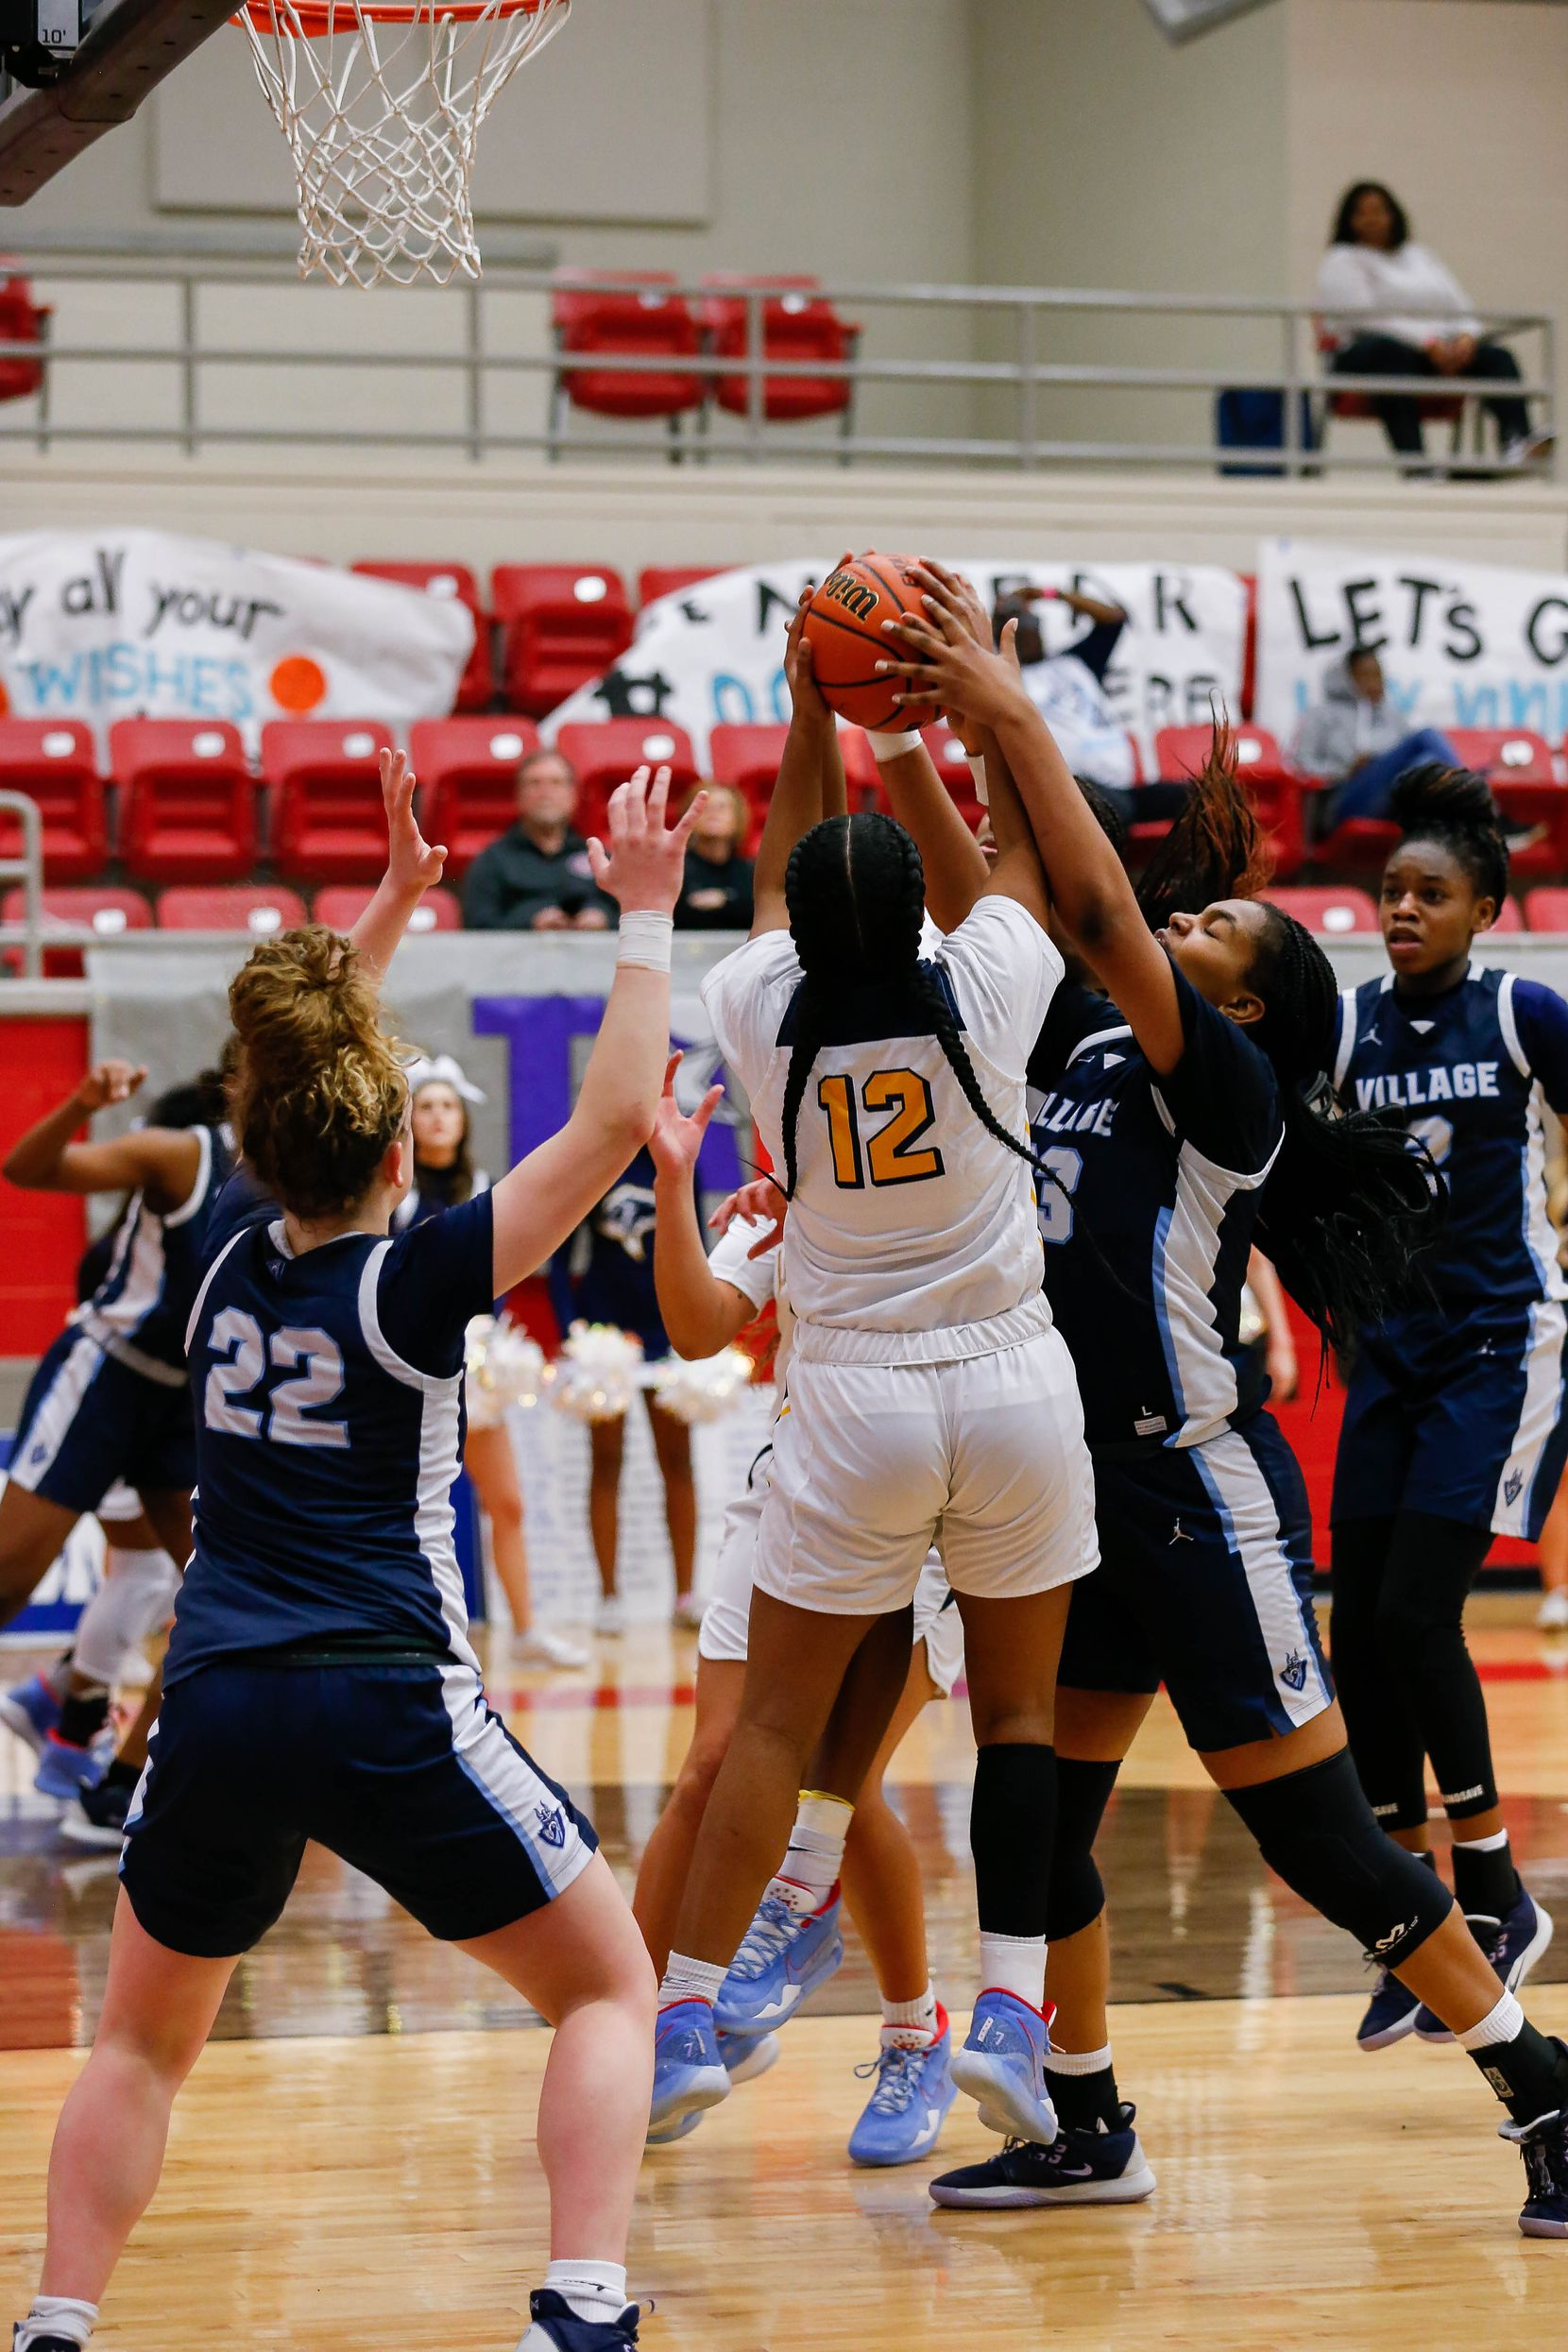 Players from Plano Prestonwood Christian and the Village School fight for the ball during the second half of a TAPPS Class 6A girls basketball state championship game on Feb. 28, 2020 in West. Prestonwood lost 75-48.